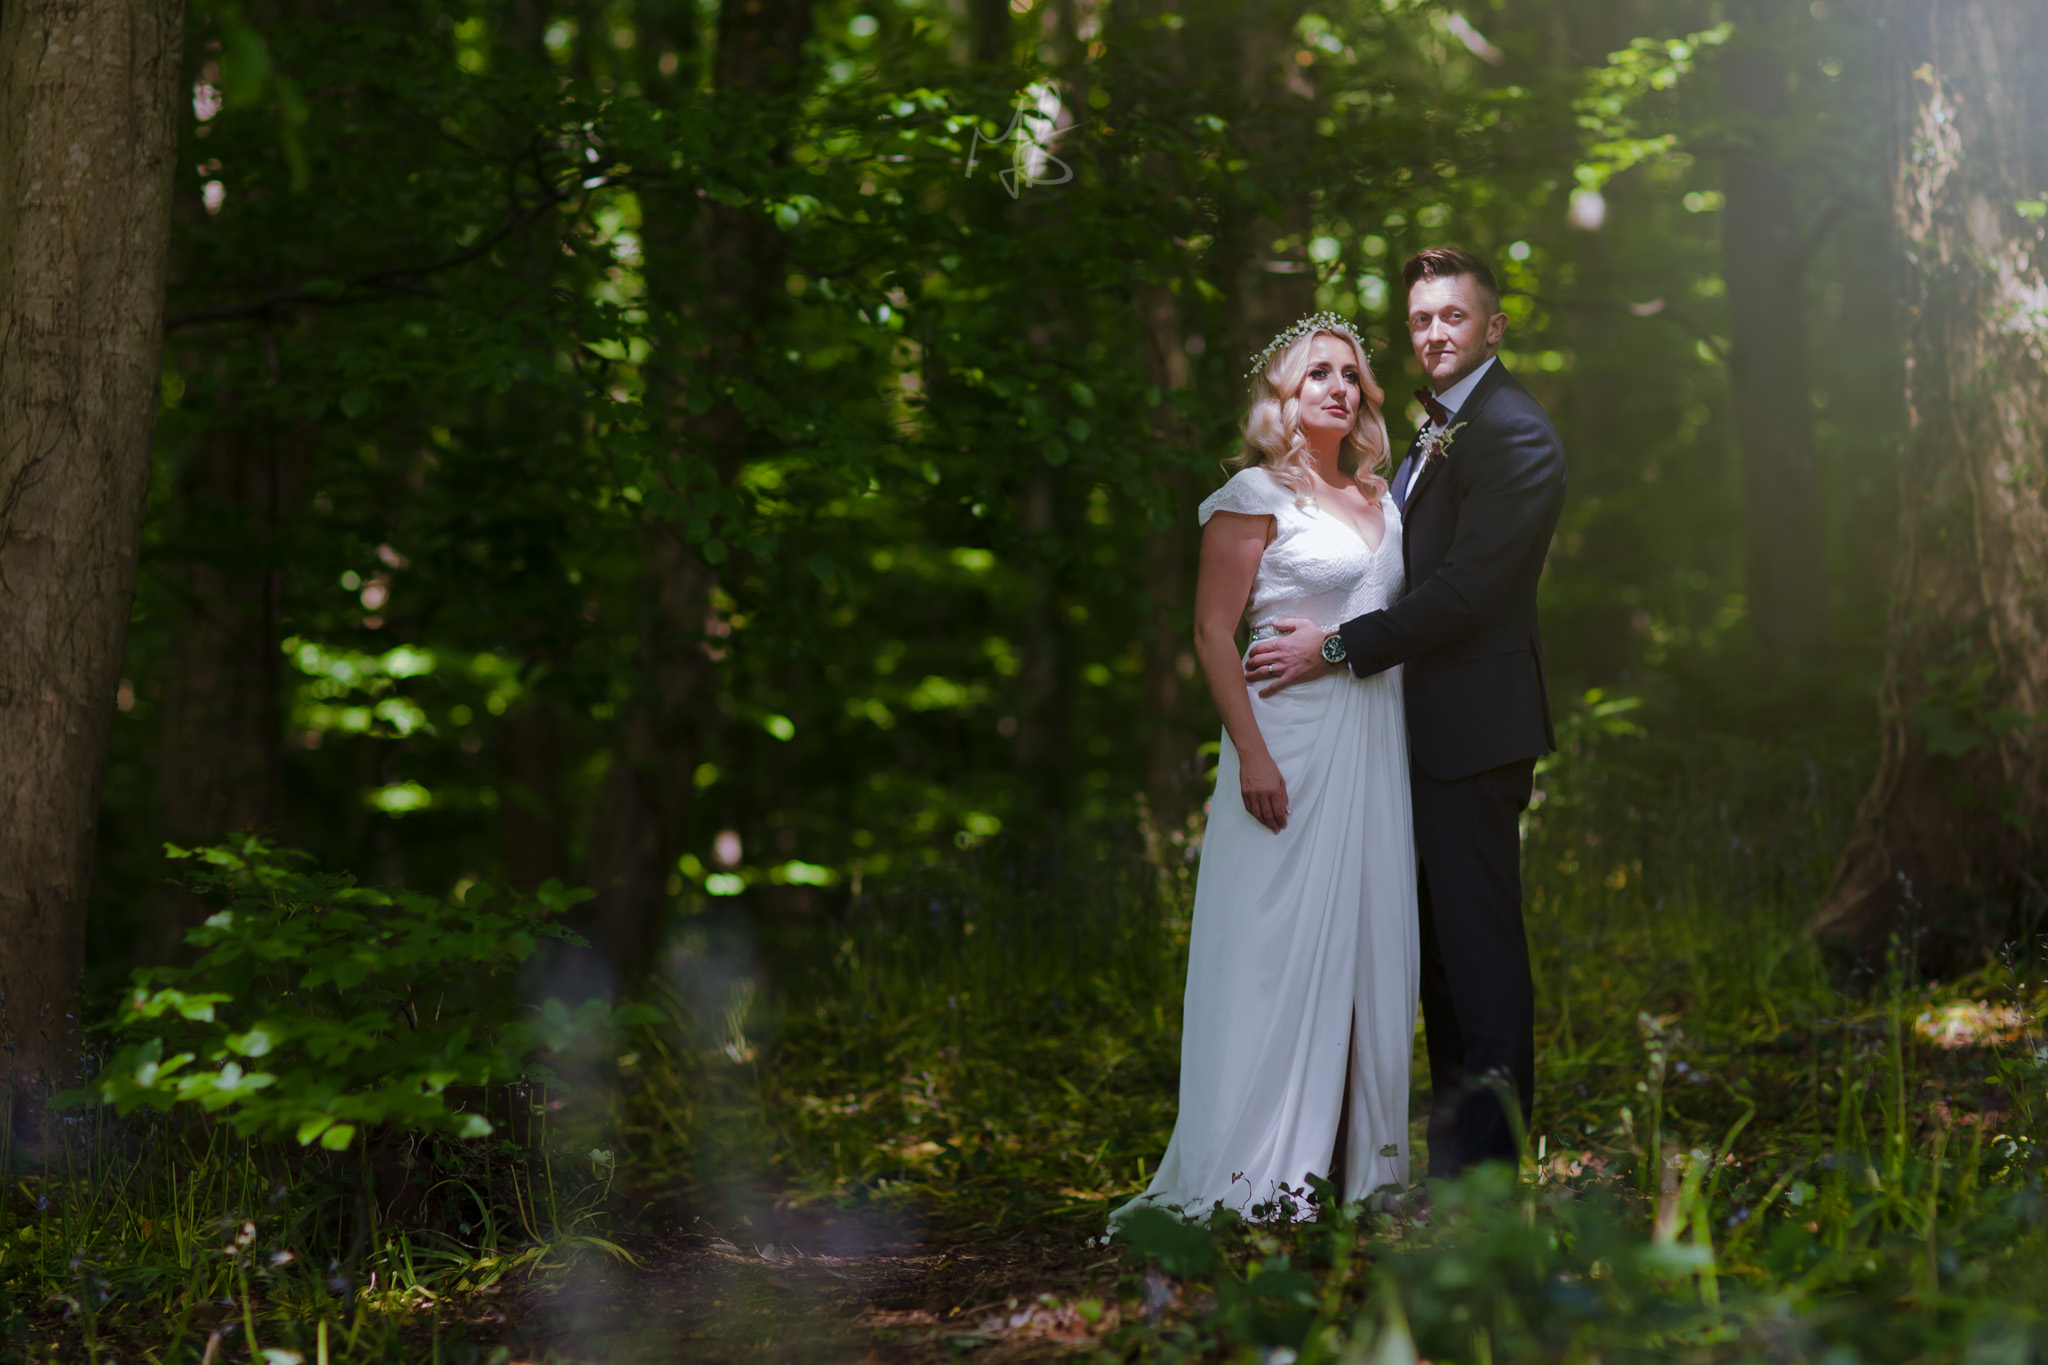 Northern_Ireland_Wedding-Photographer-Mark-Barnes-Newry_wedding_Photography-Katie&Darren-41.jpg